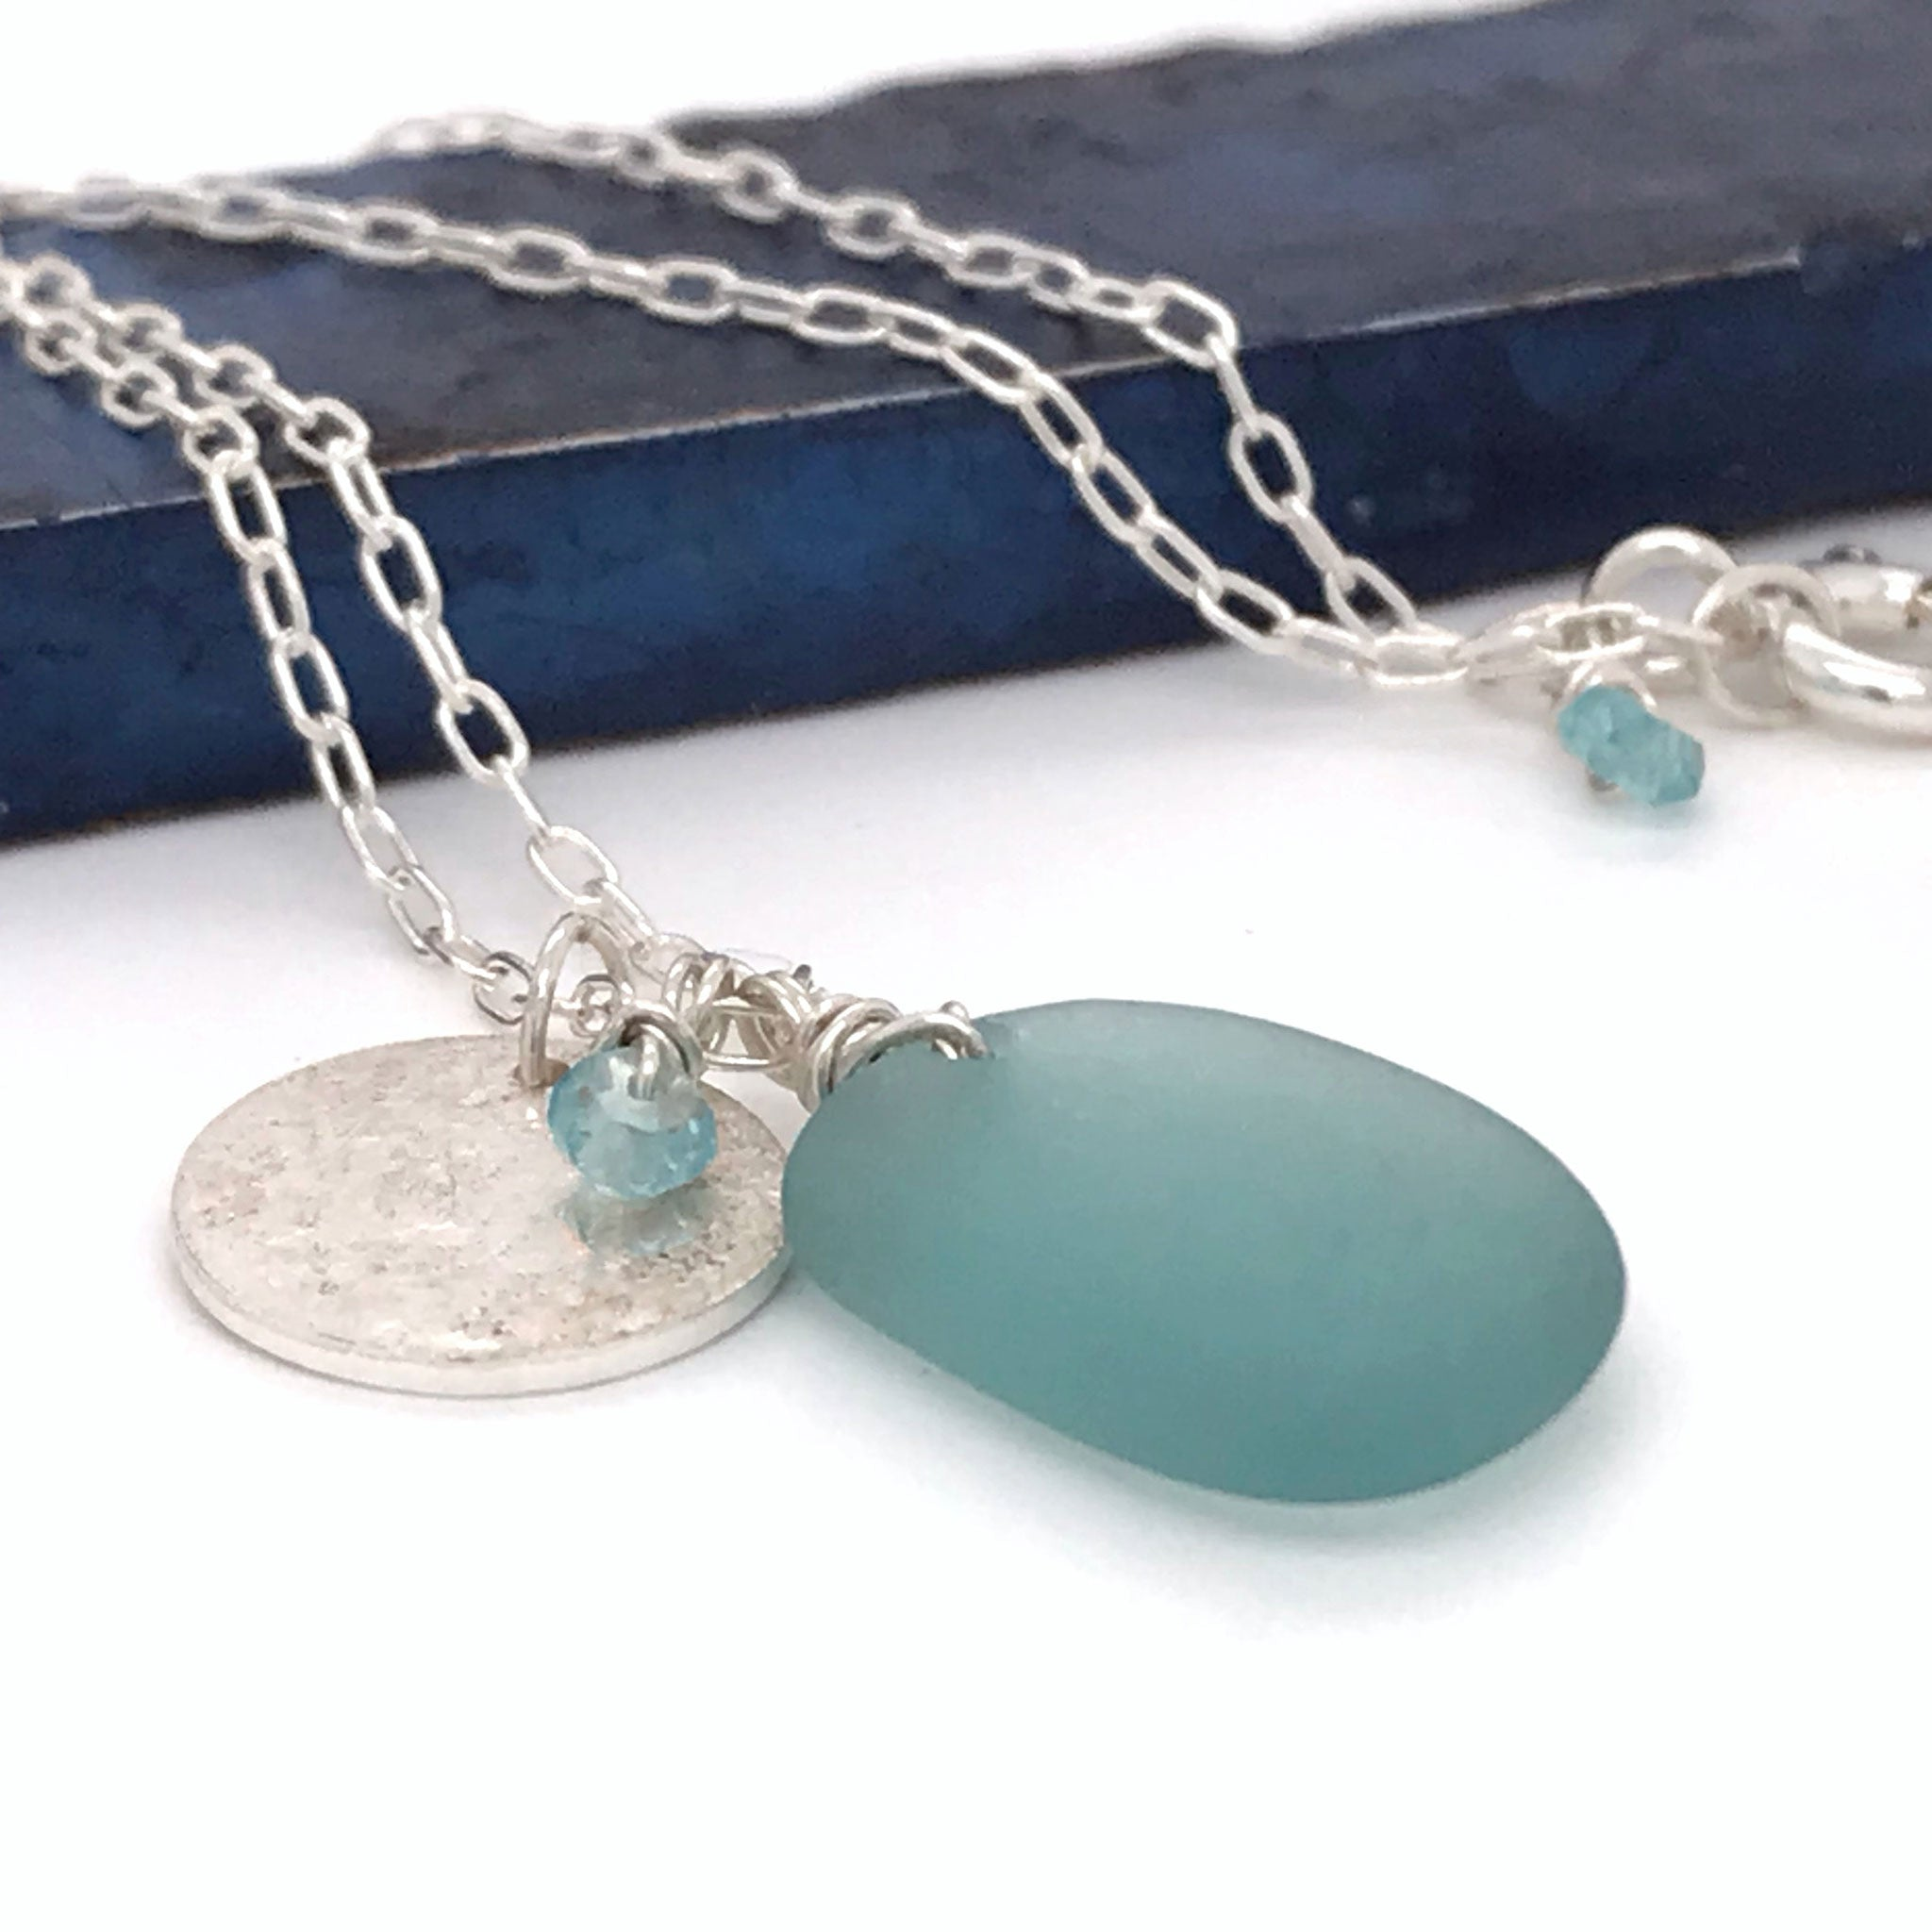 sterling silver charm necklace with Japanese aqua seaglass and disc charm kriket broadhurst jewellery